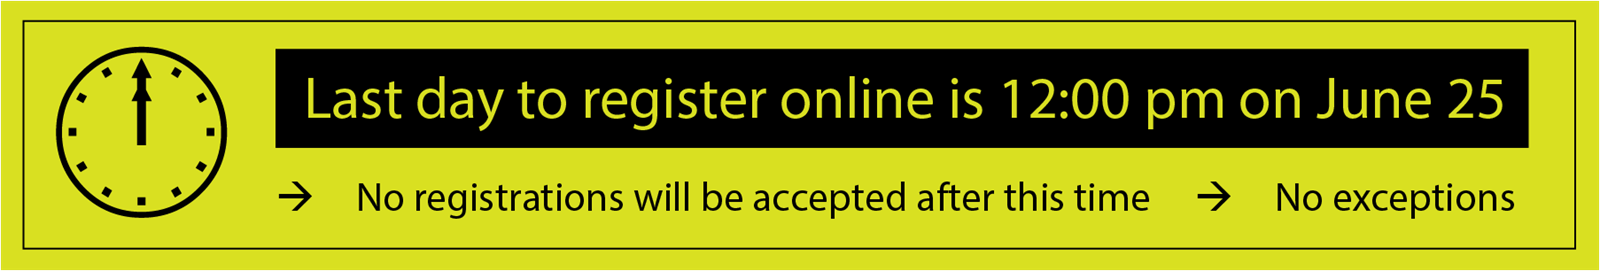 No registrations will be accepted after 12pm on June 25.png